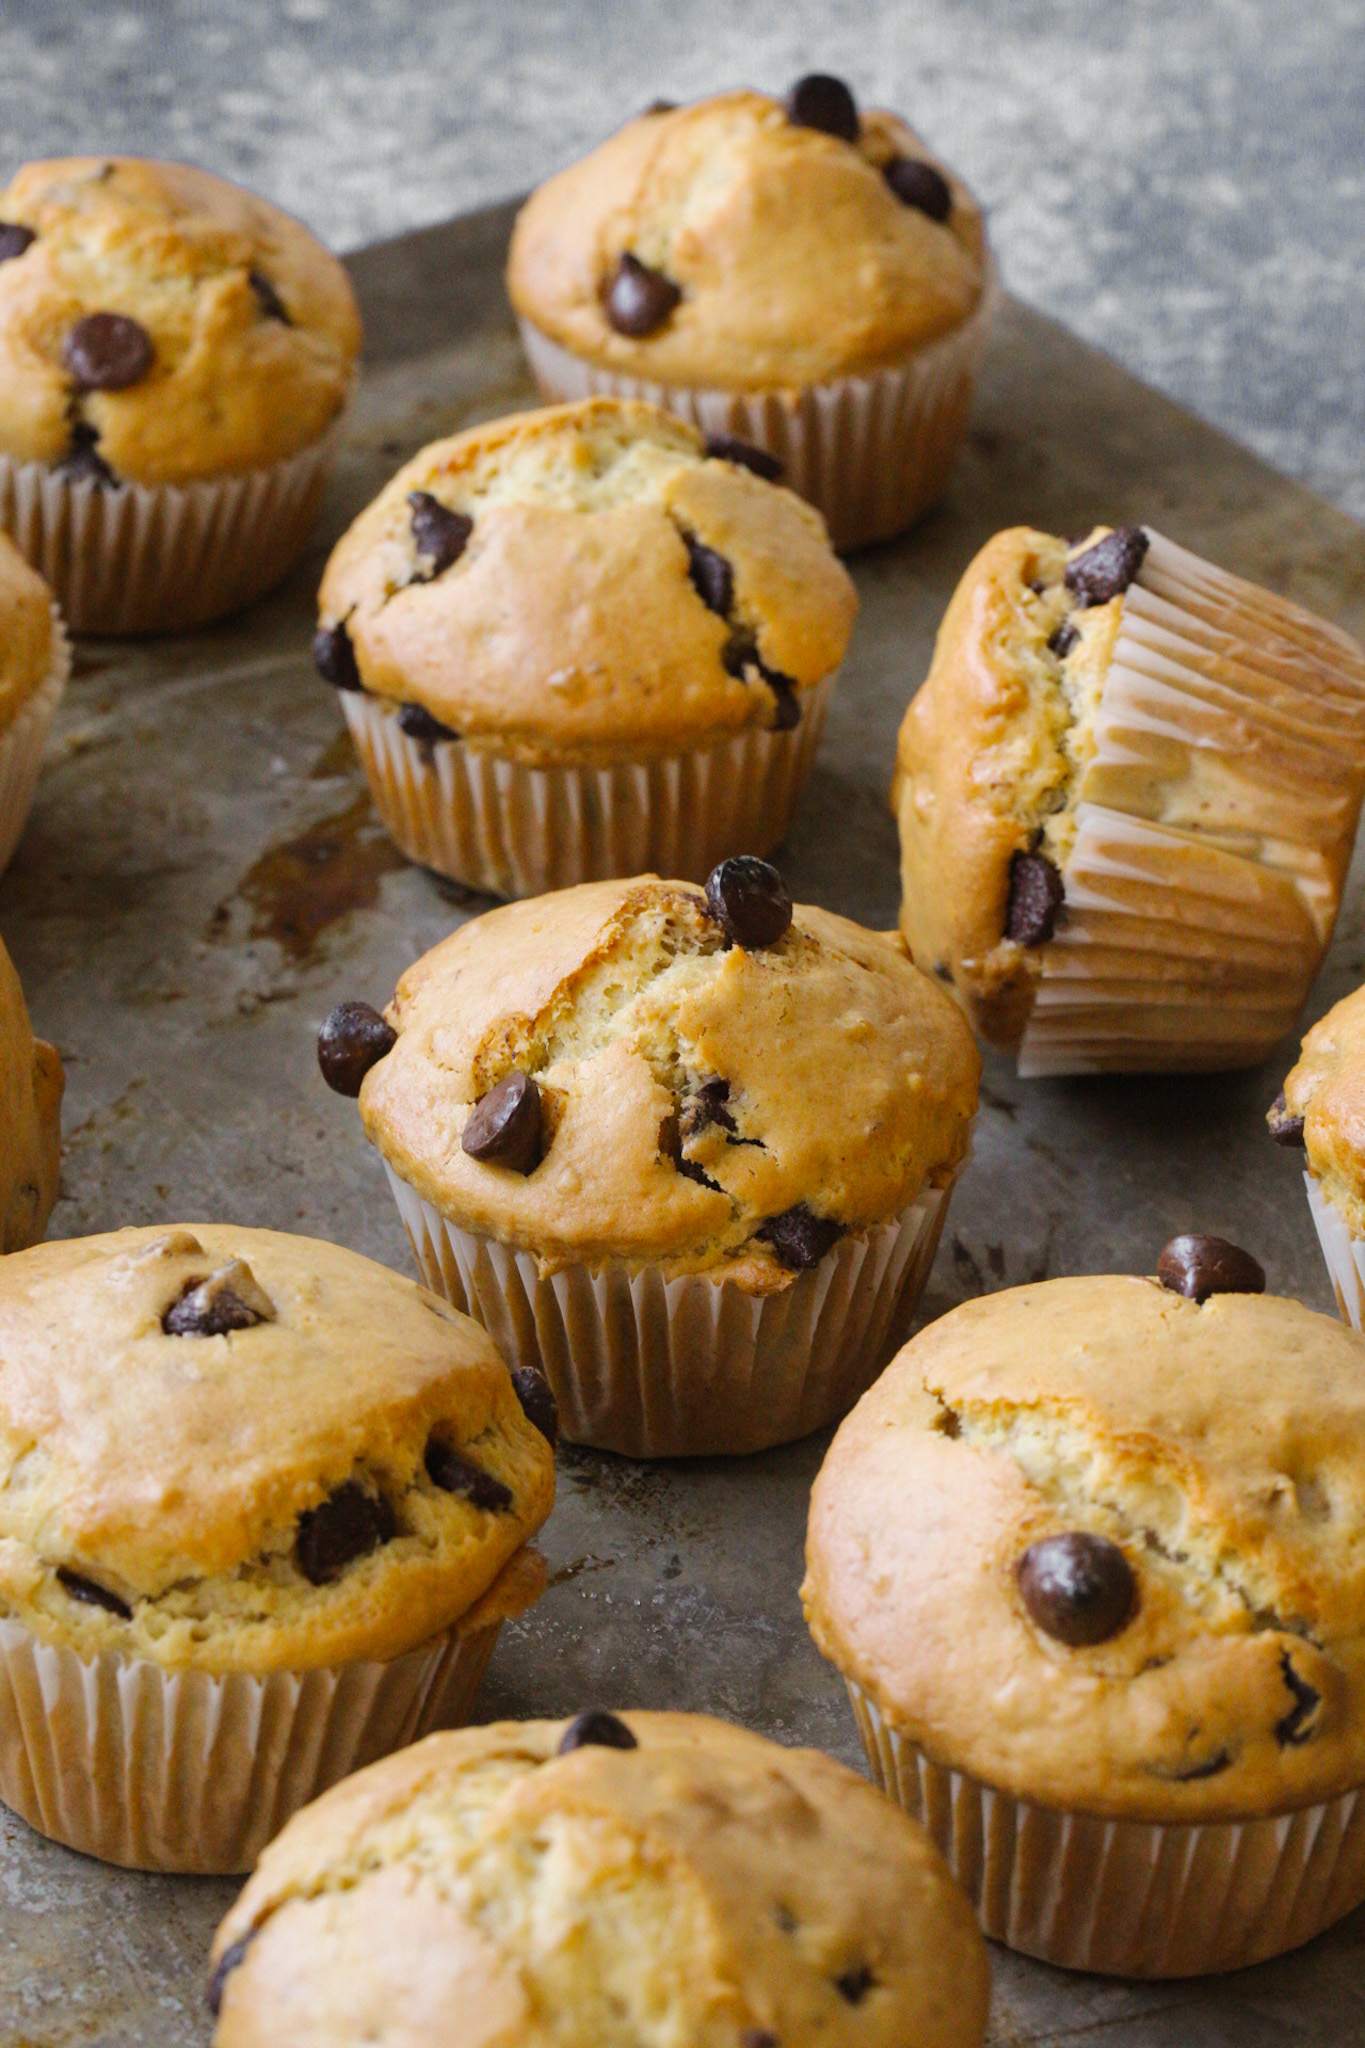 chocolate chip muffins on a baking sheet